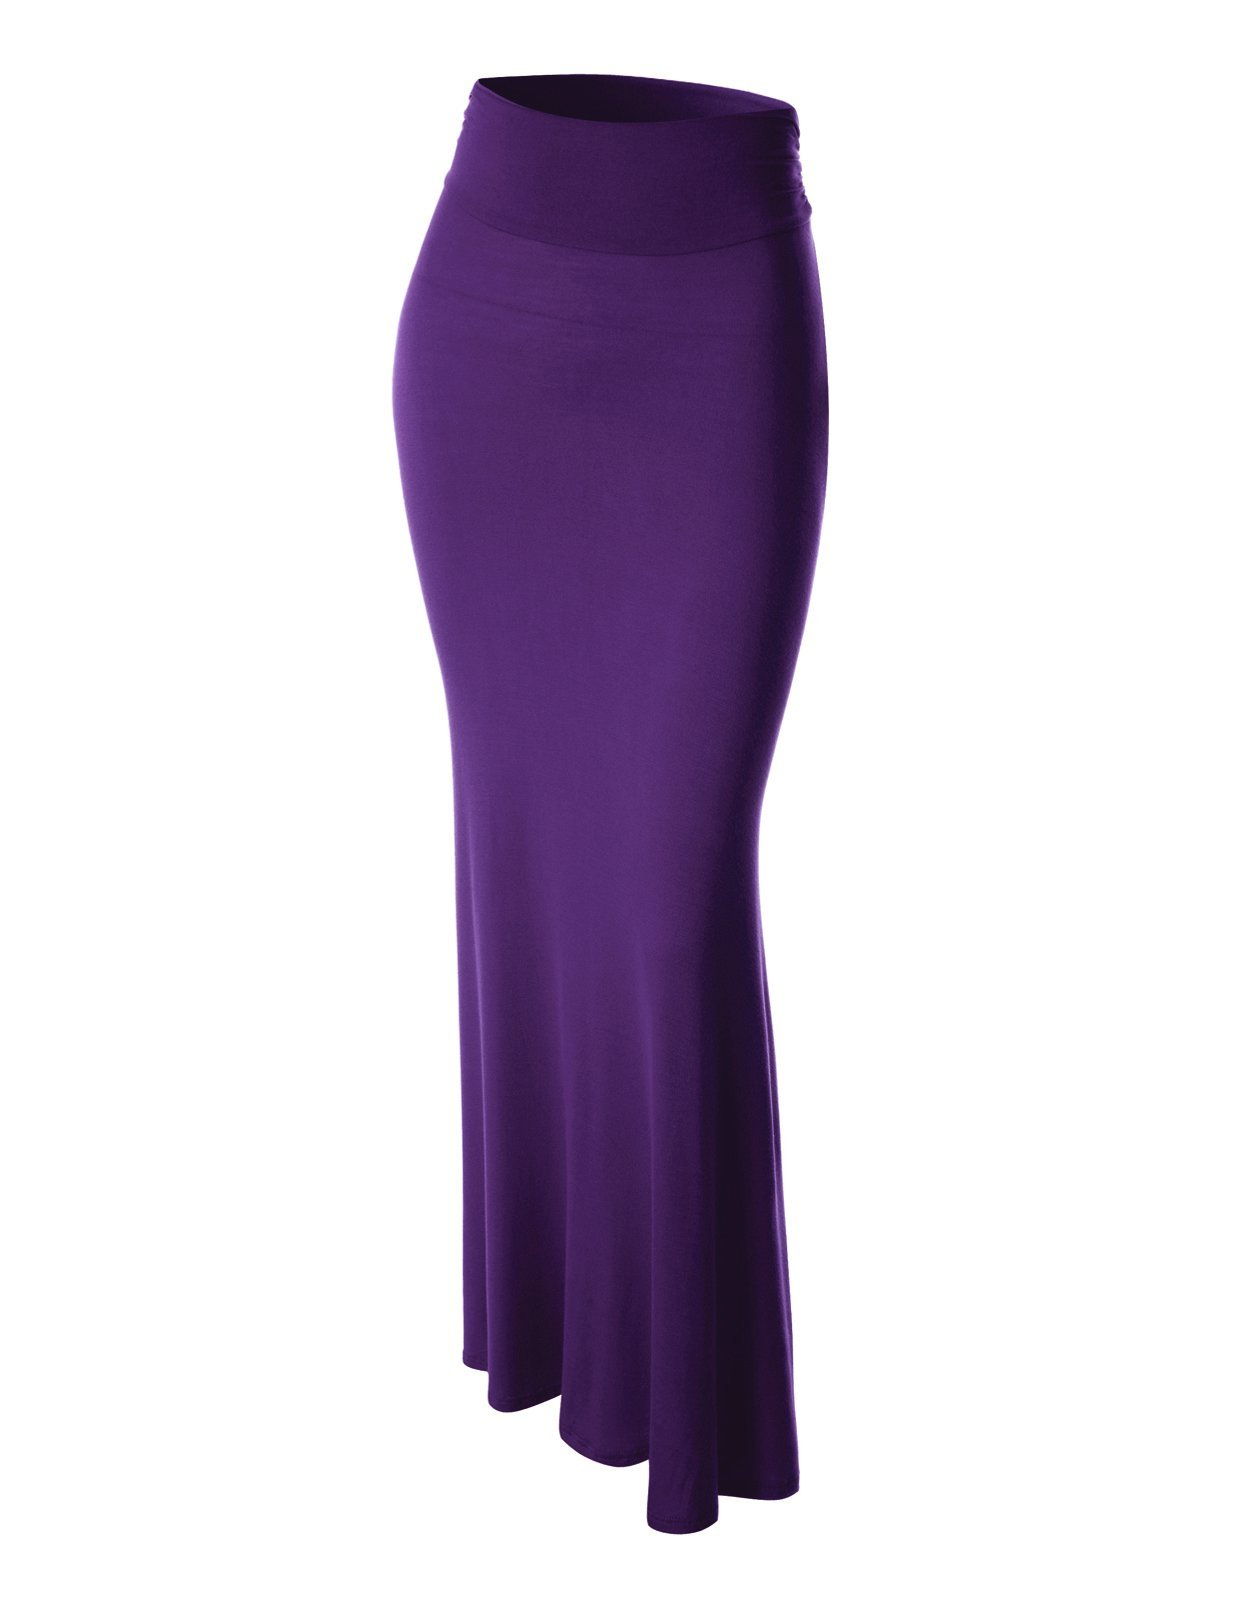 FLATSEVEN Womens High Waisted Flared Maxi Skirt (Made in USA) (WSC101) Purple, M